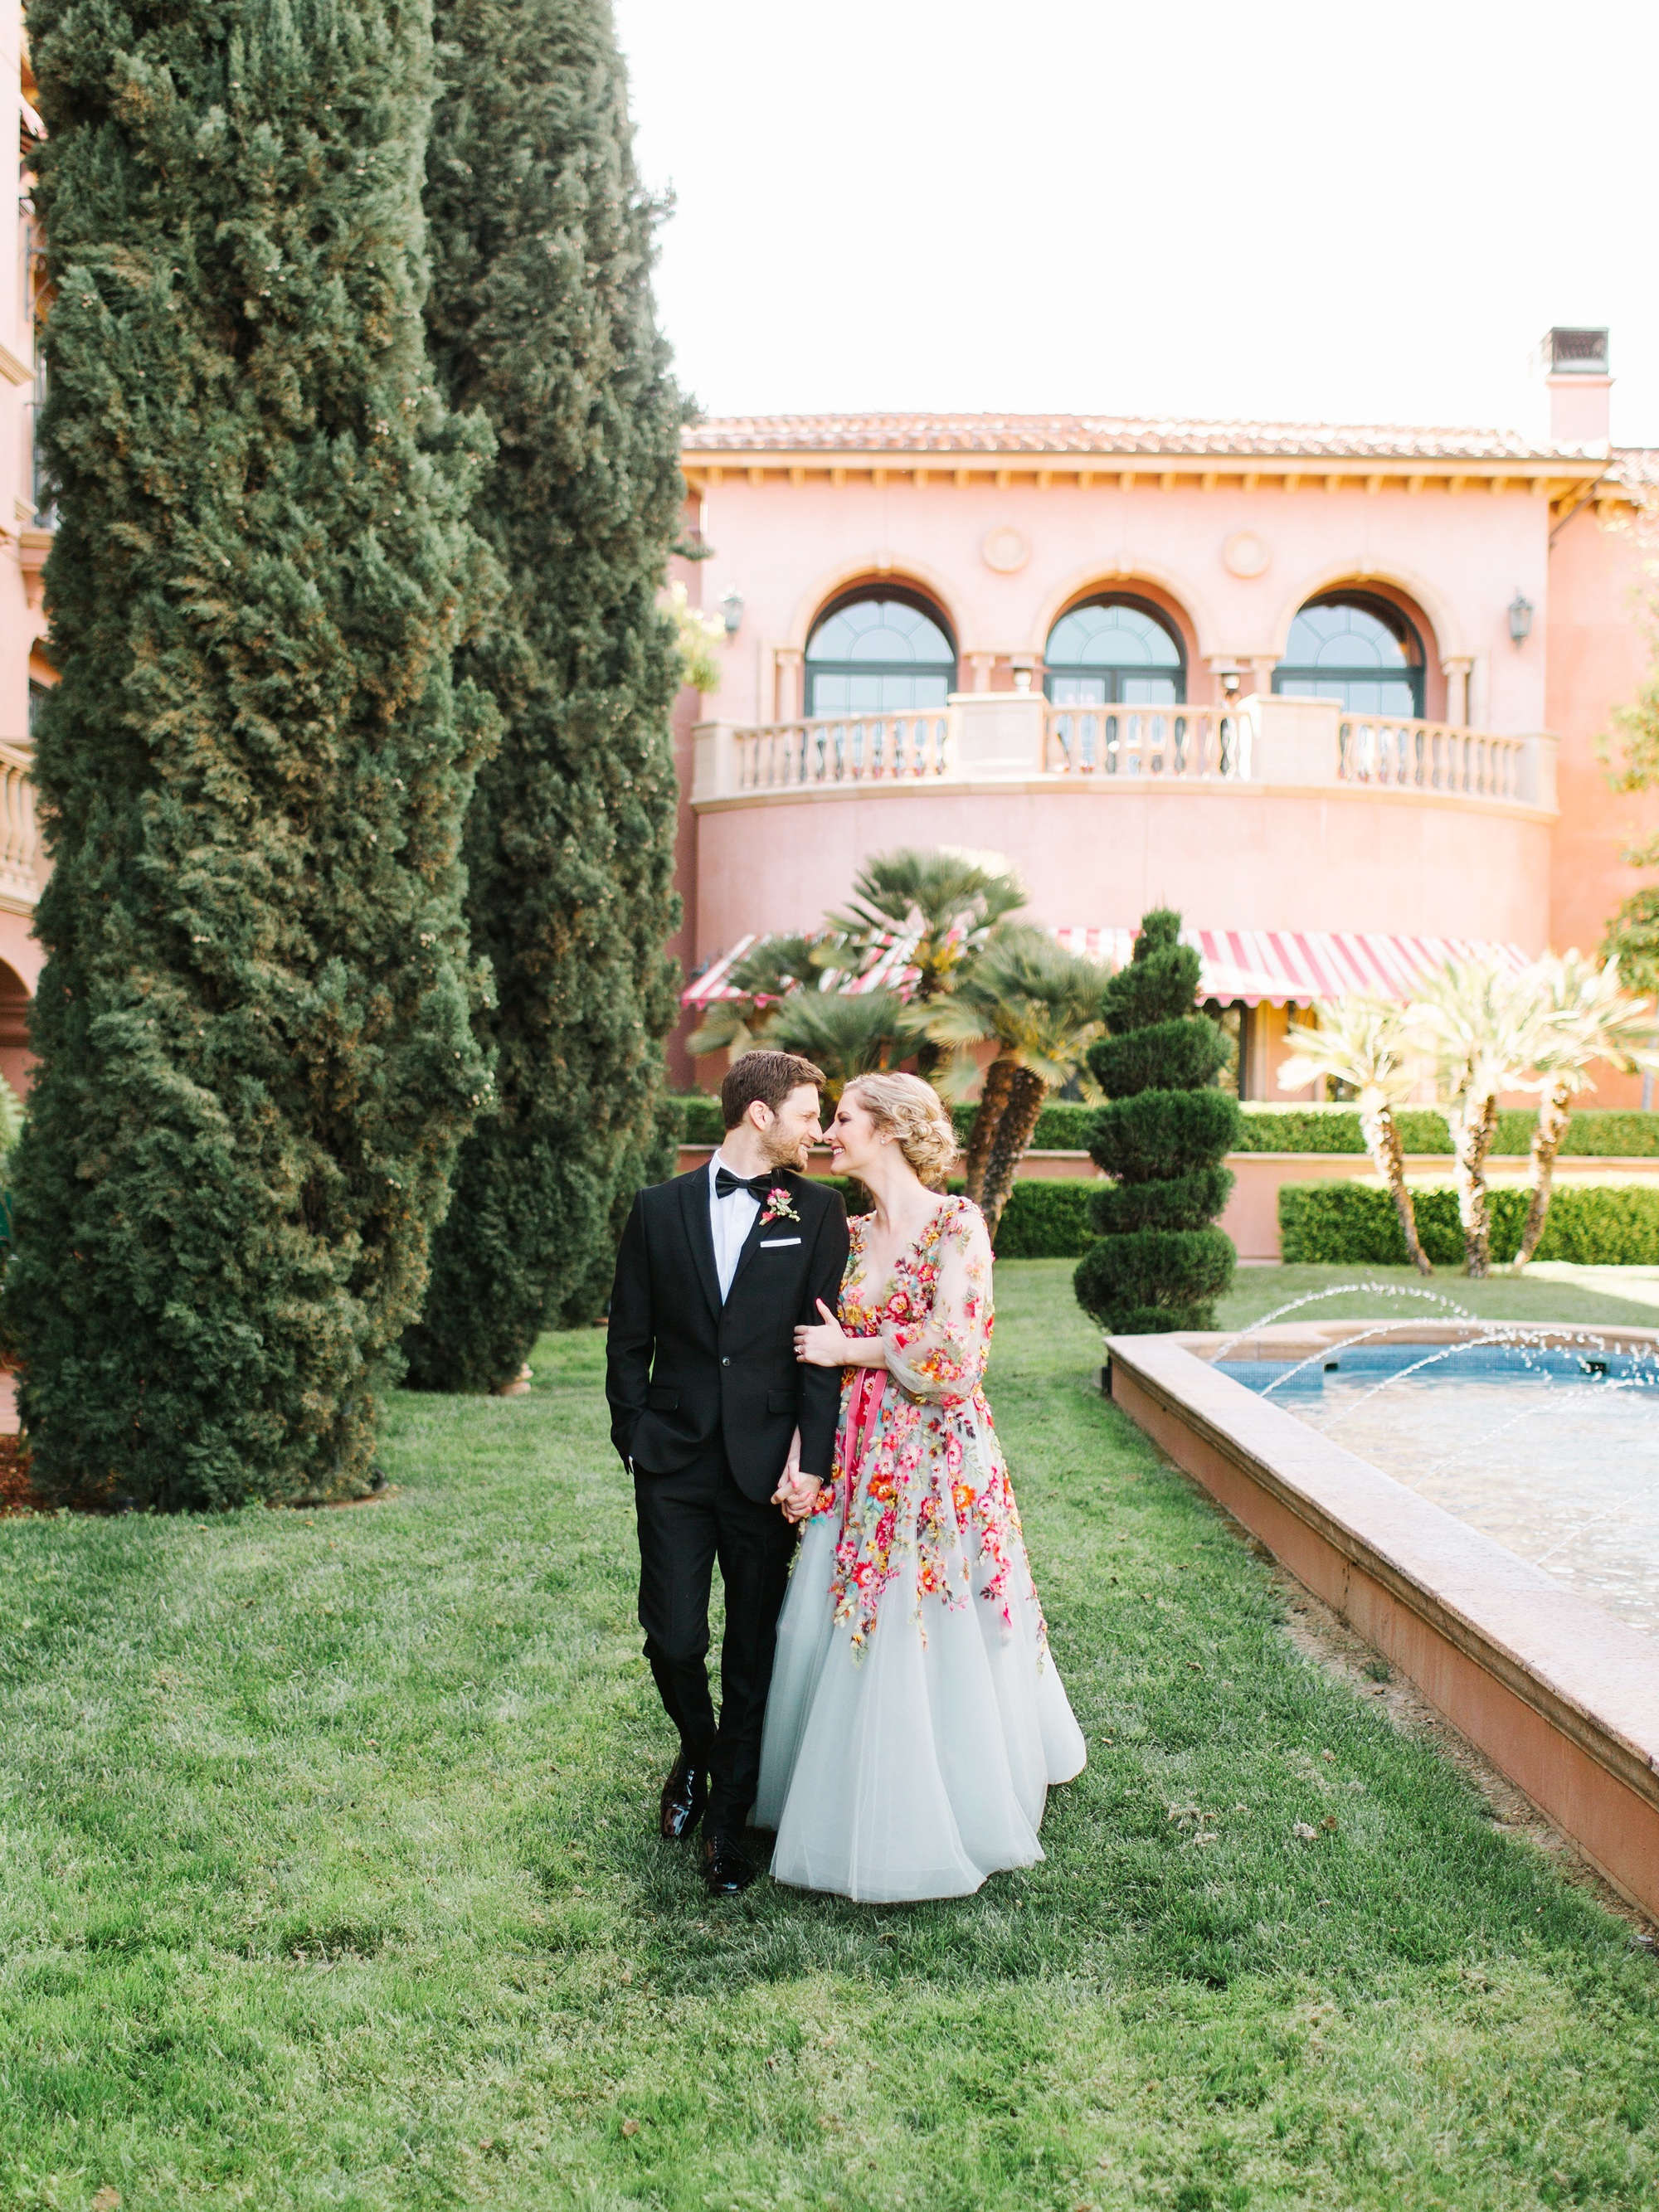 A Bright, Colorful San Diego Wedding Inspired by Smoothies